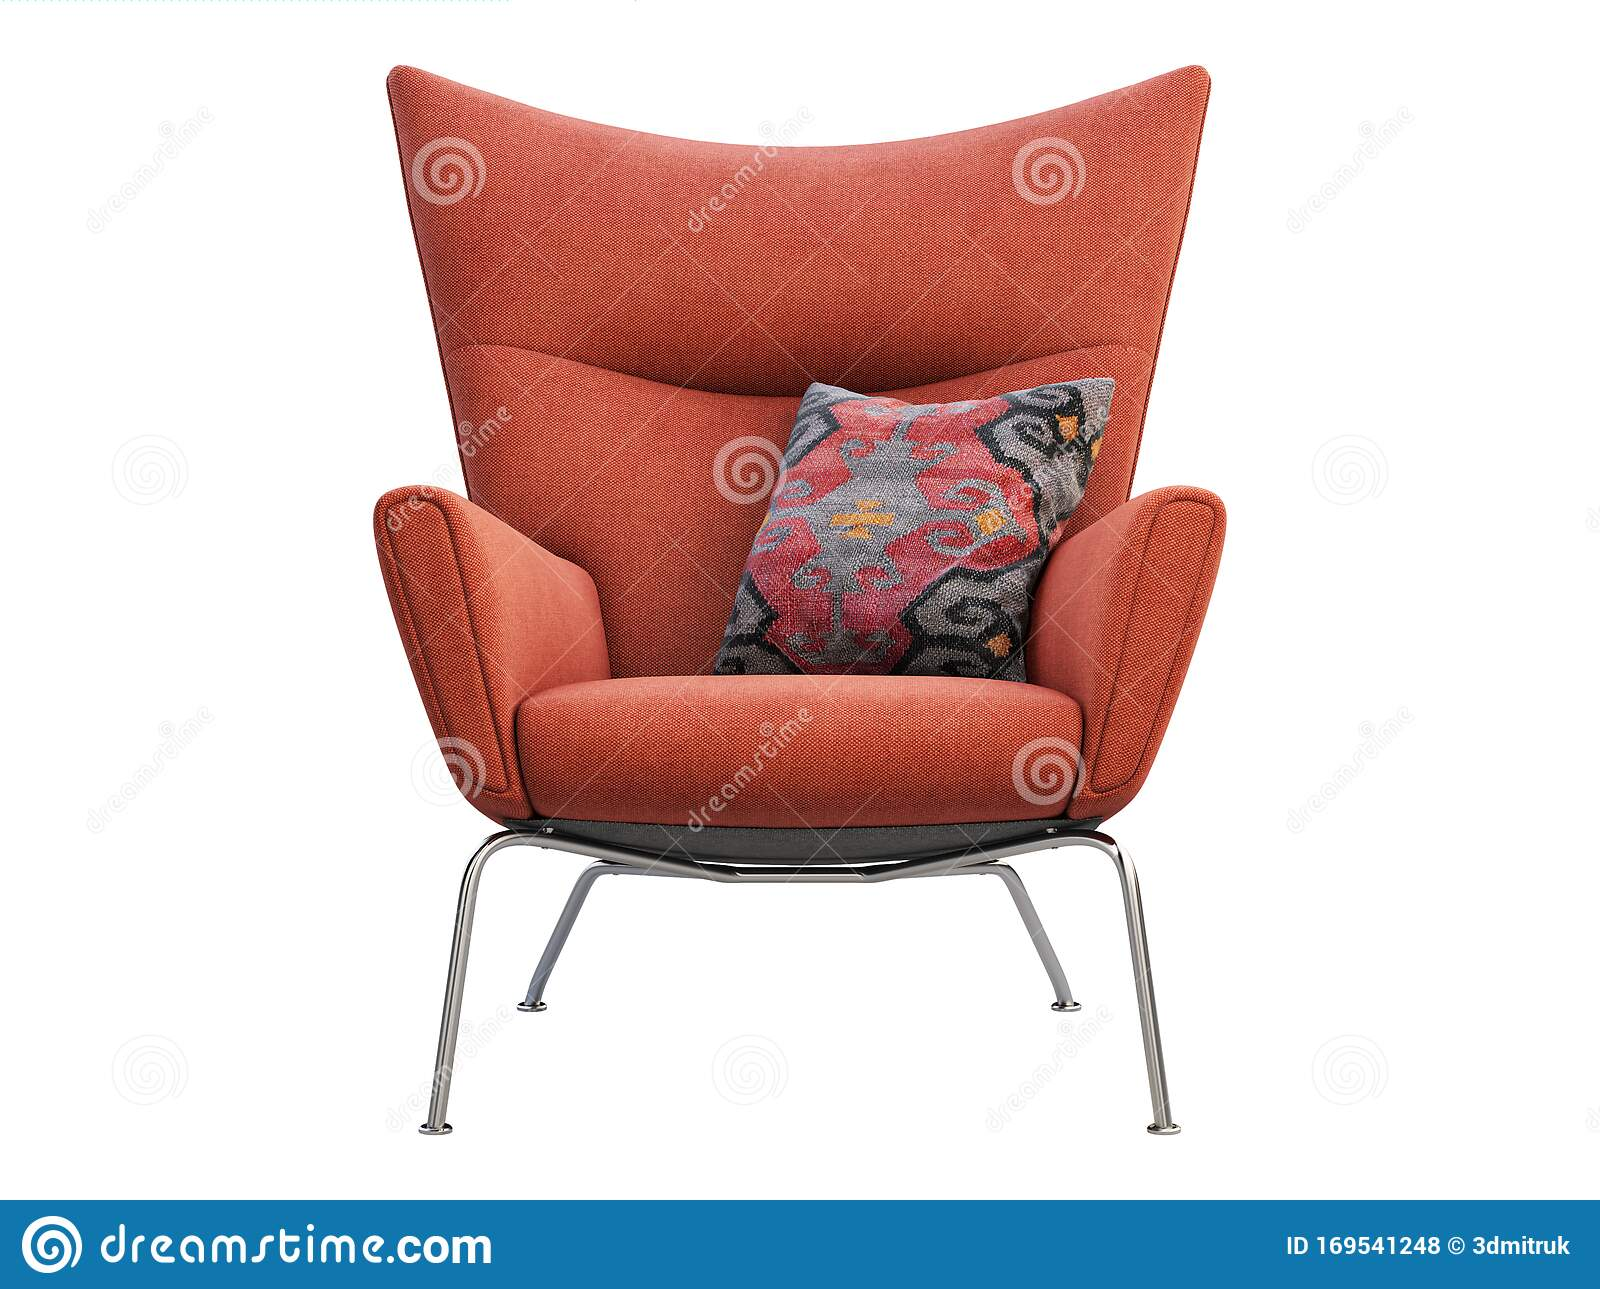 Mid Century Red Fabric Wing Chair With Pillow 3d Render Stock Illustration Illustration Of Living Interior 169541248